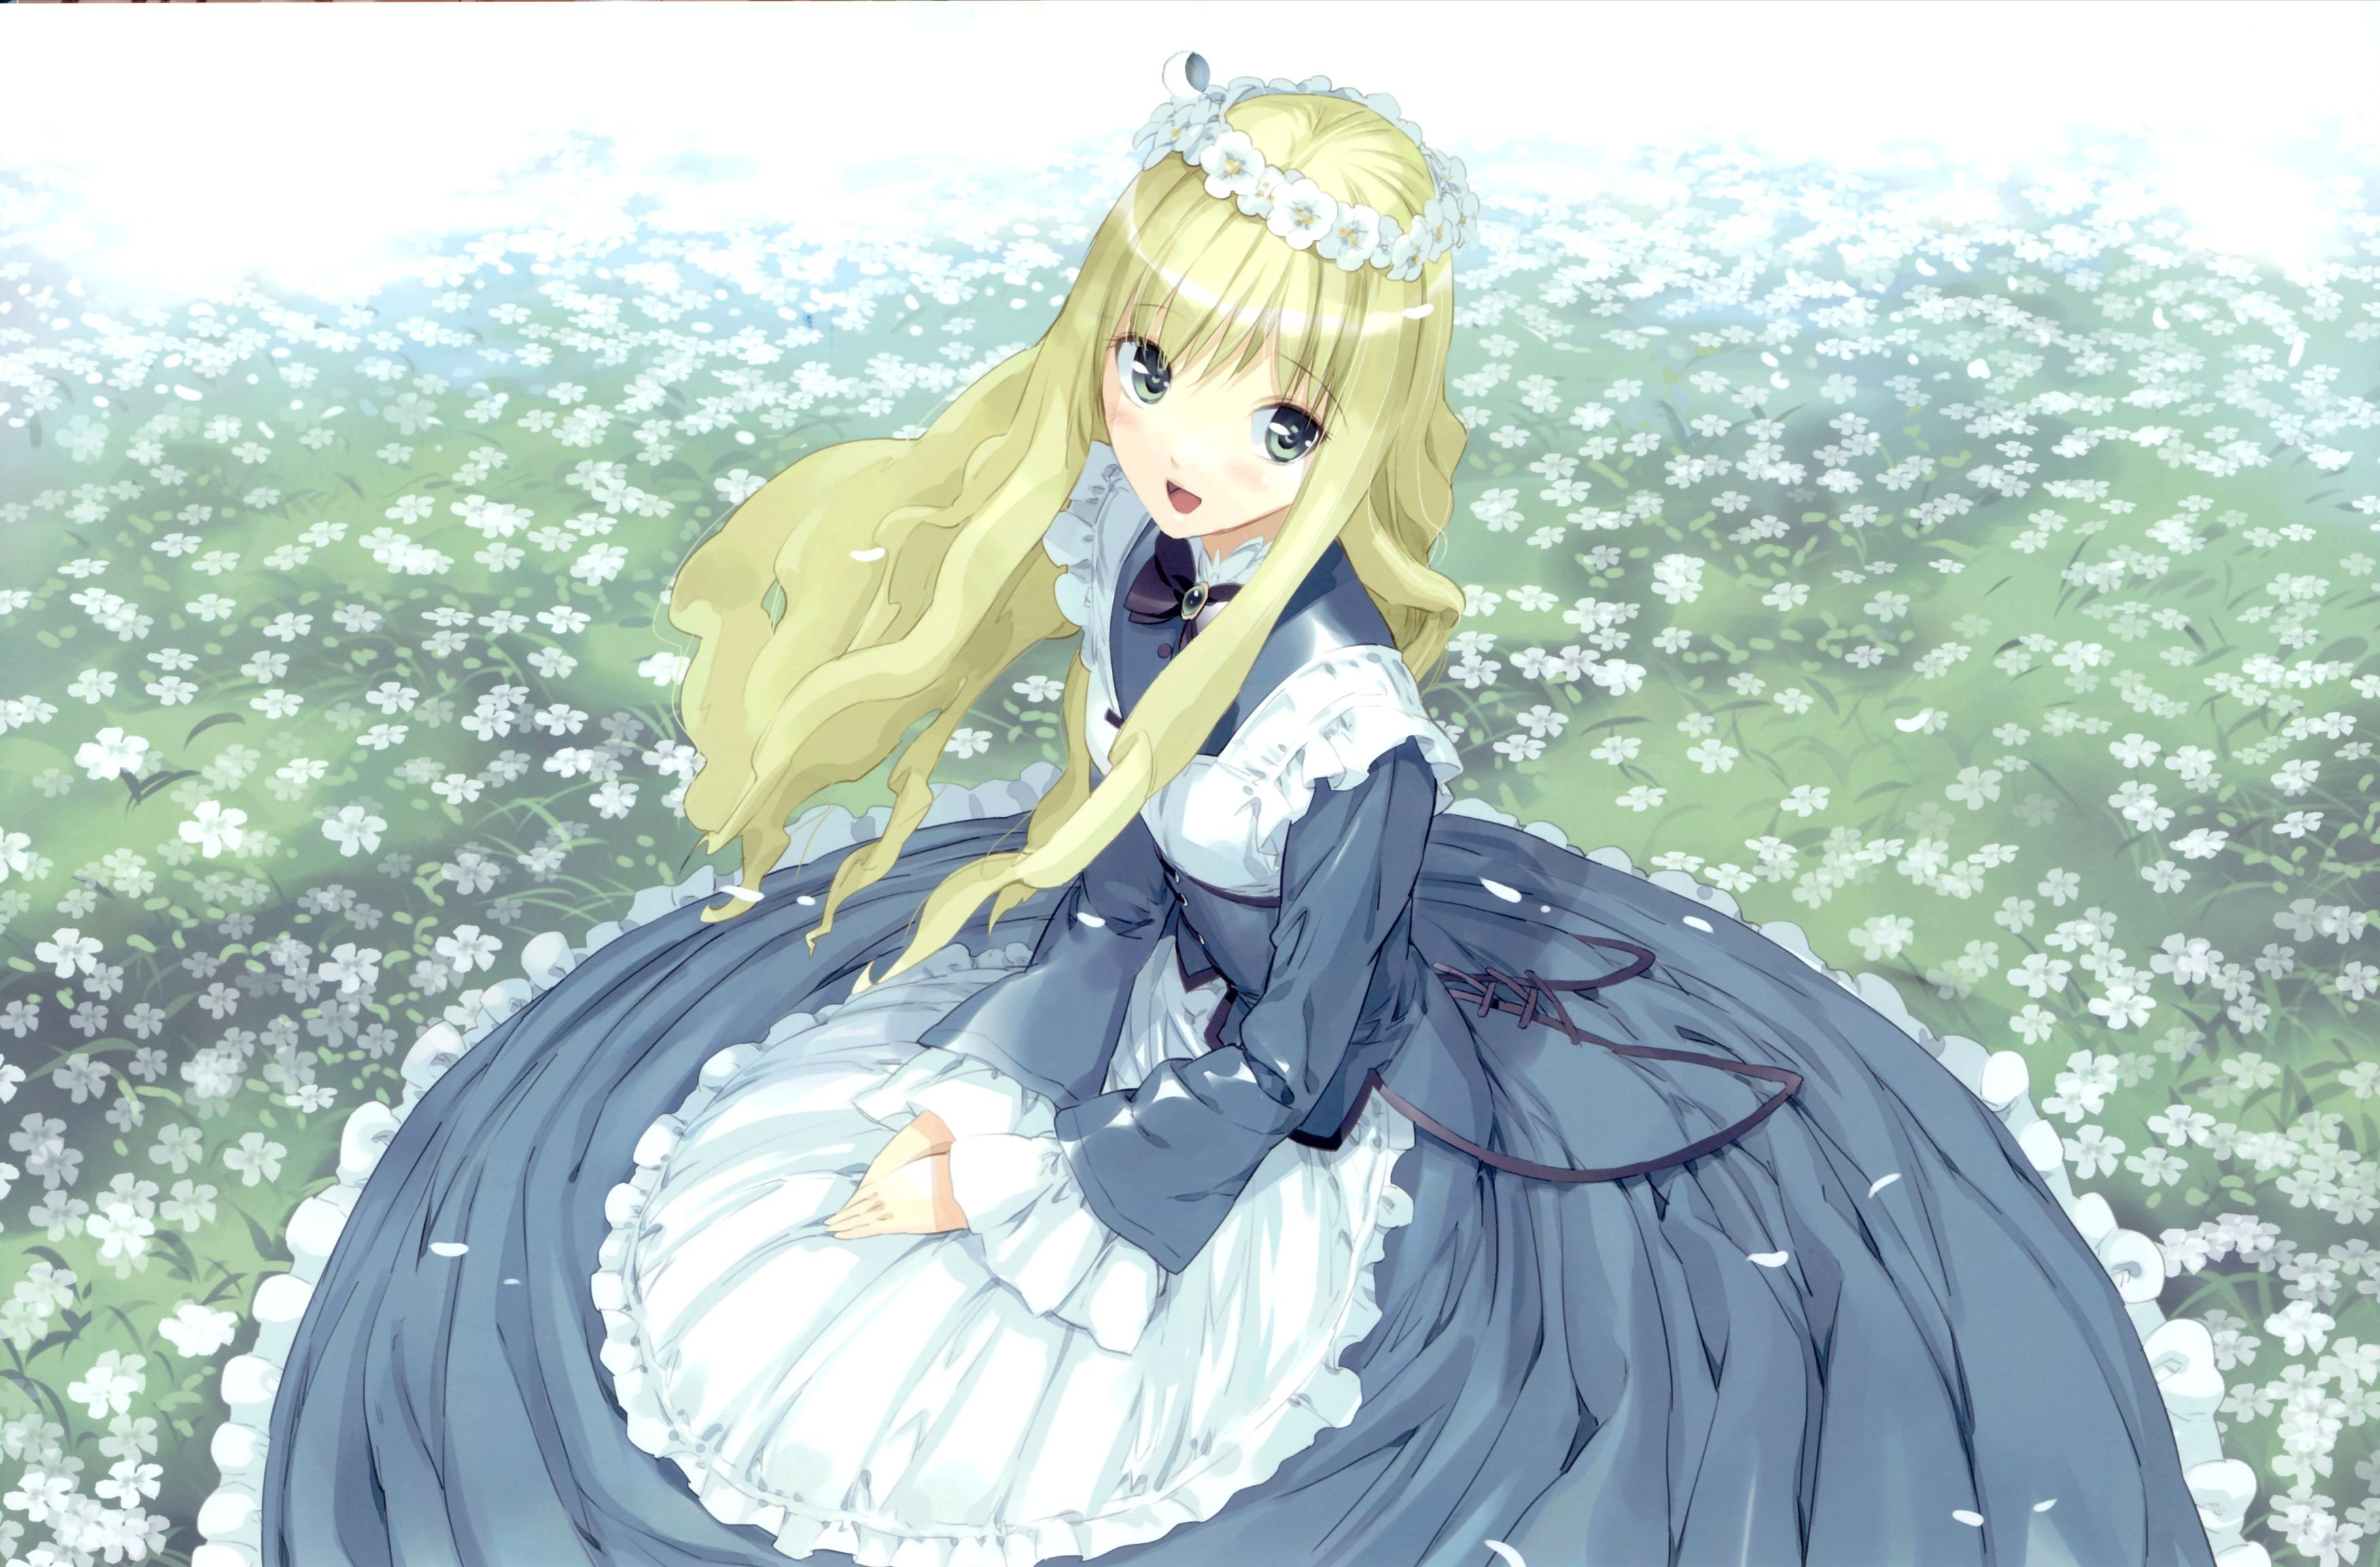 Anime Girls Flowers Alice In Wonderland Hd Wallpapers Desktop